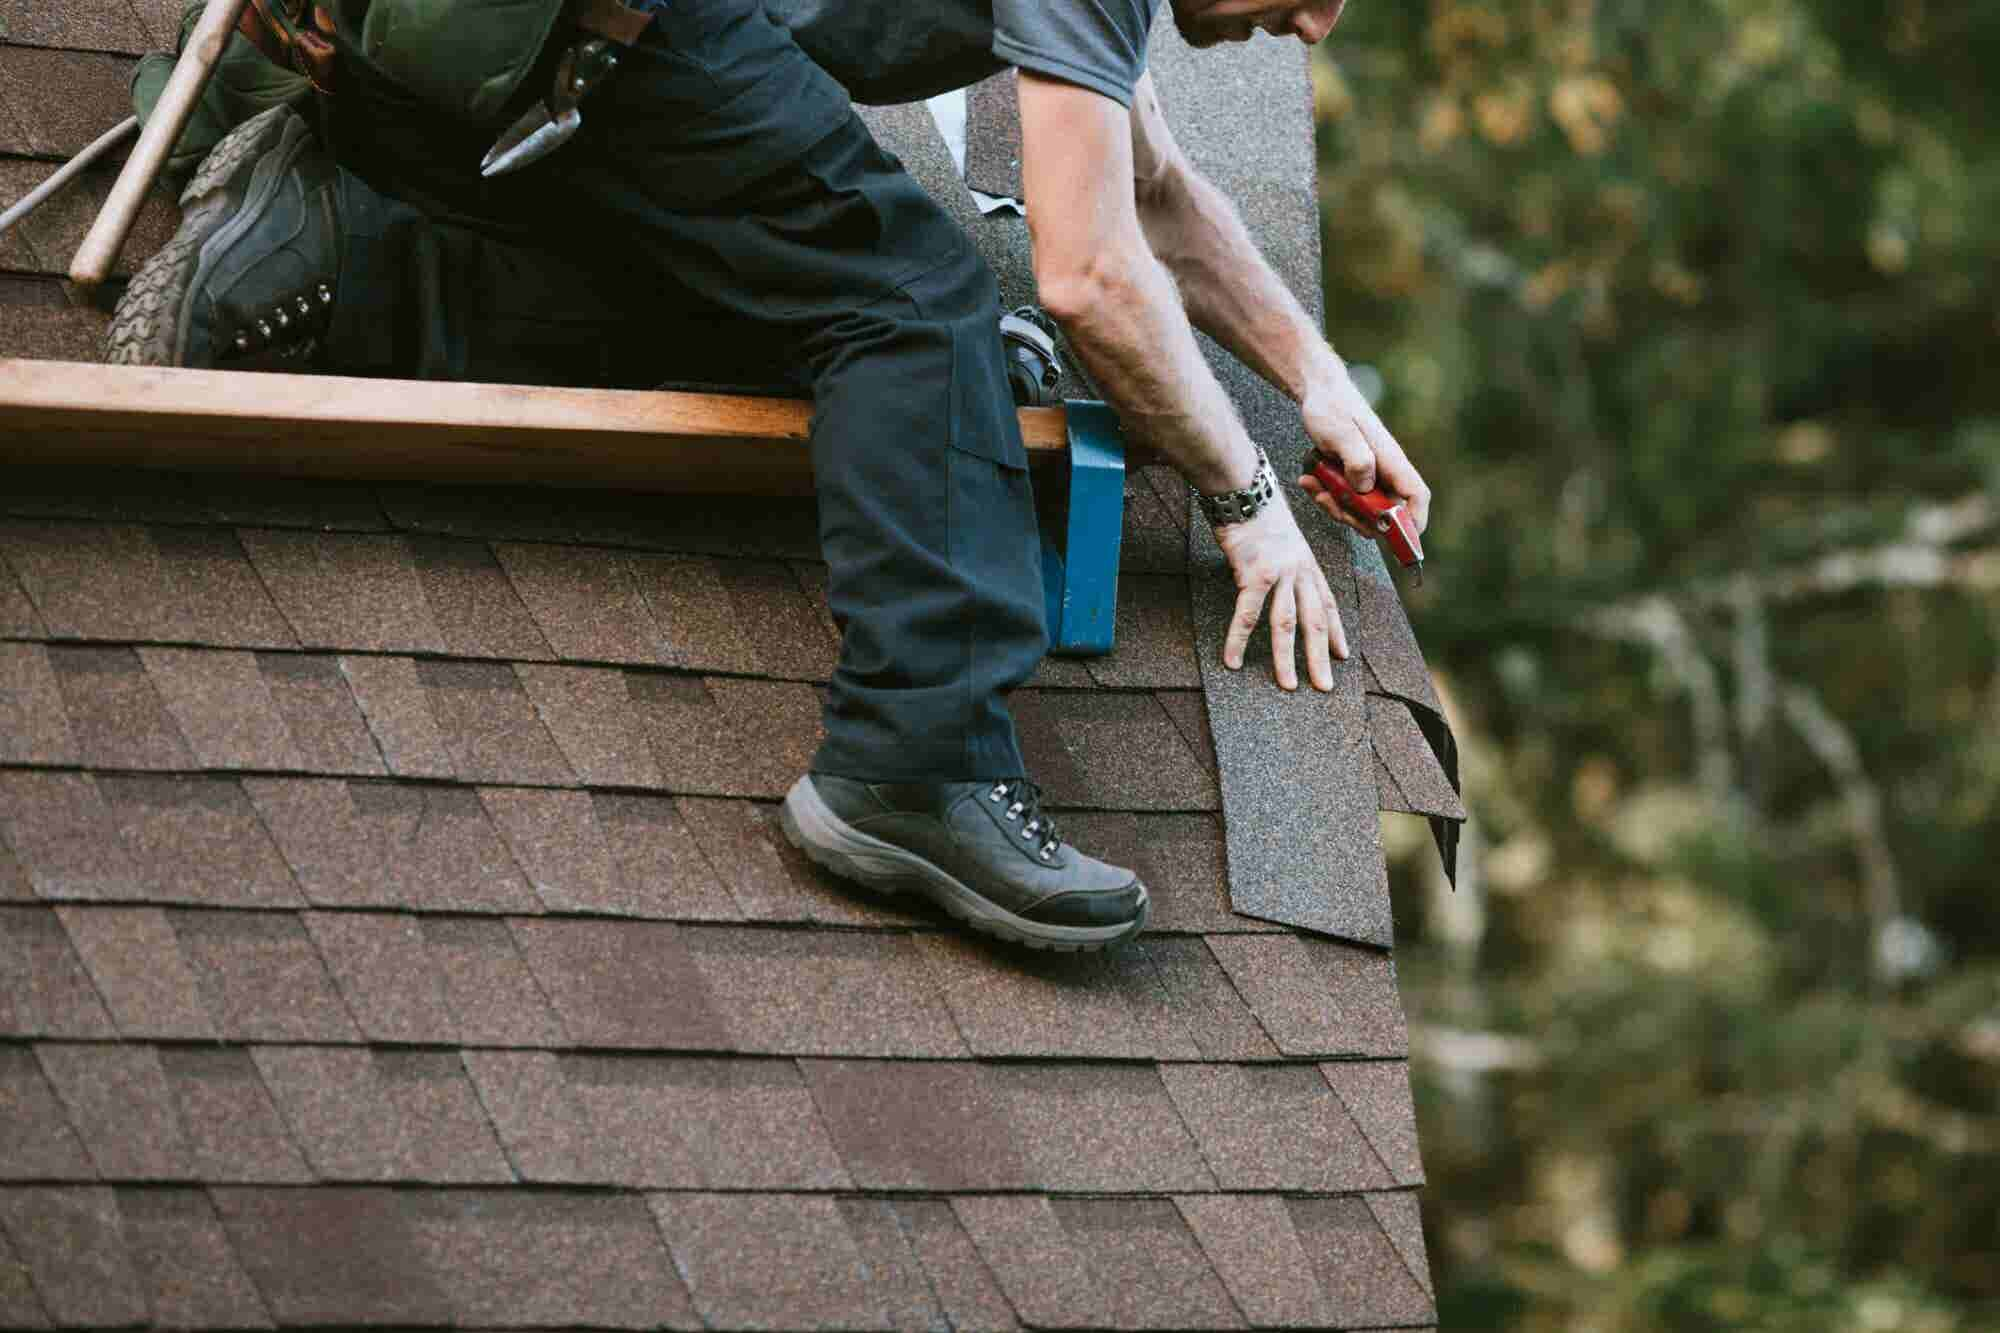 5 Business Lessons I Learned From My Dad the Roofer